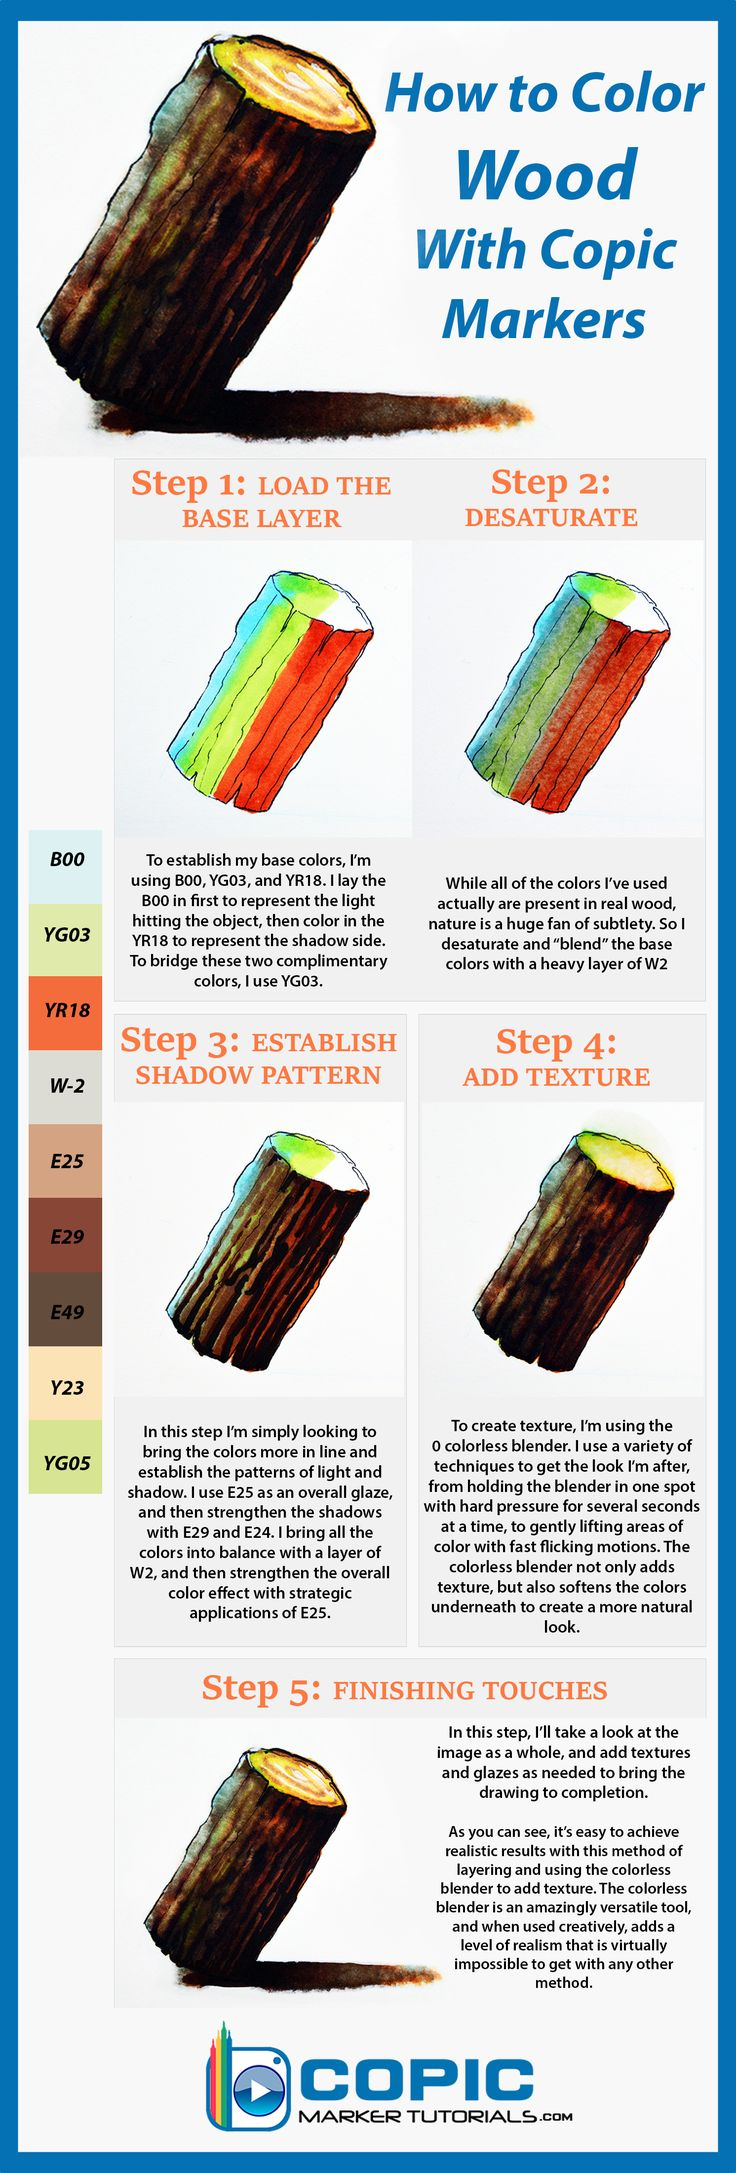 Rendering Textures With Copic Markers - How to Color Wood                                                                                                                                                      More